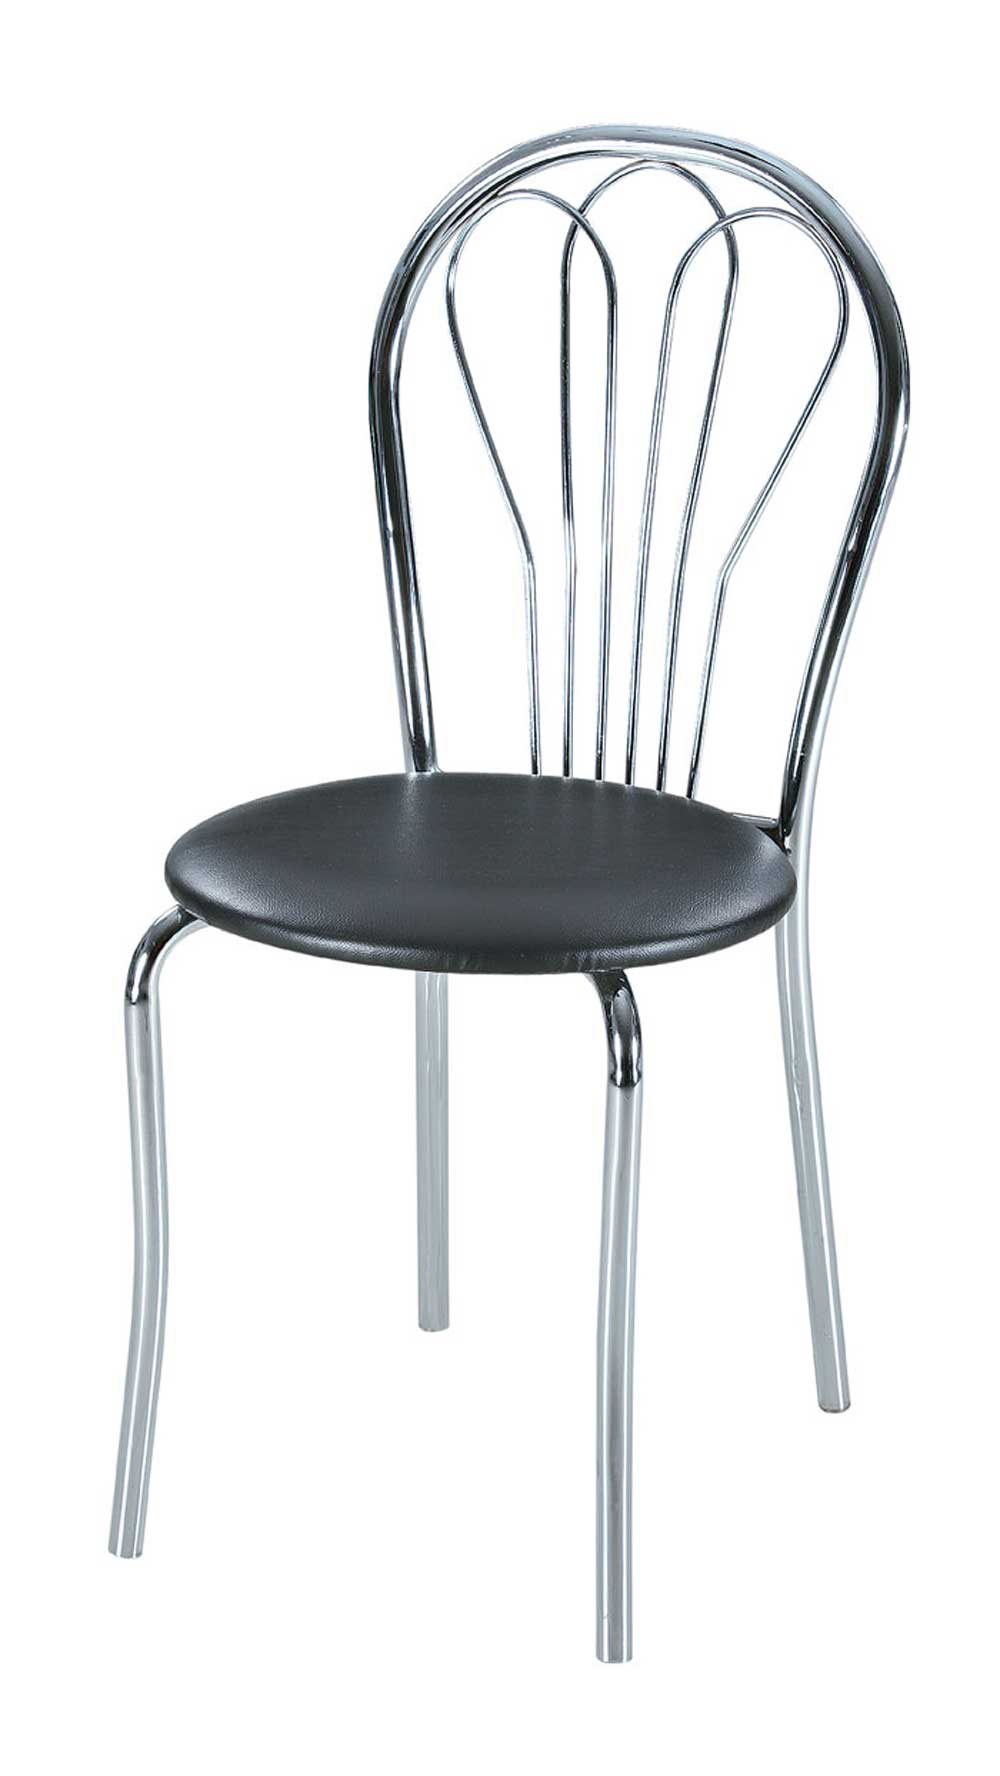 Metal Stacking Chairs with Leather Seat